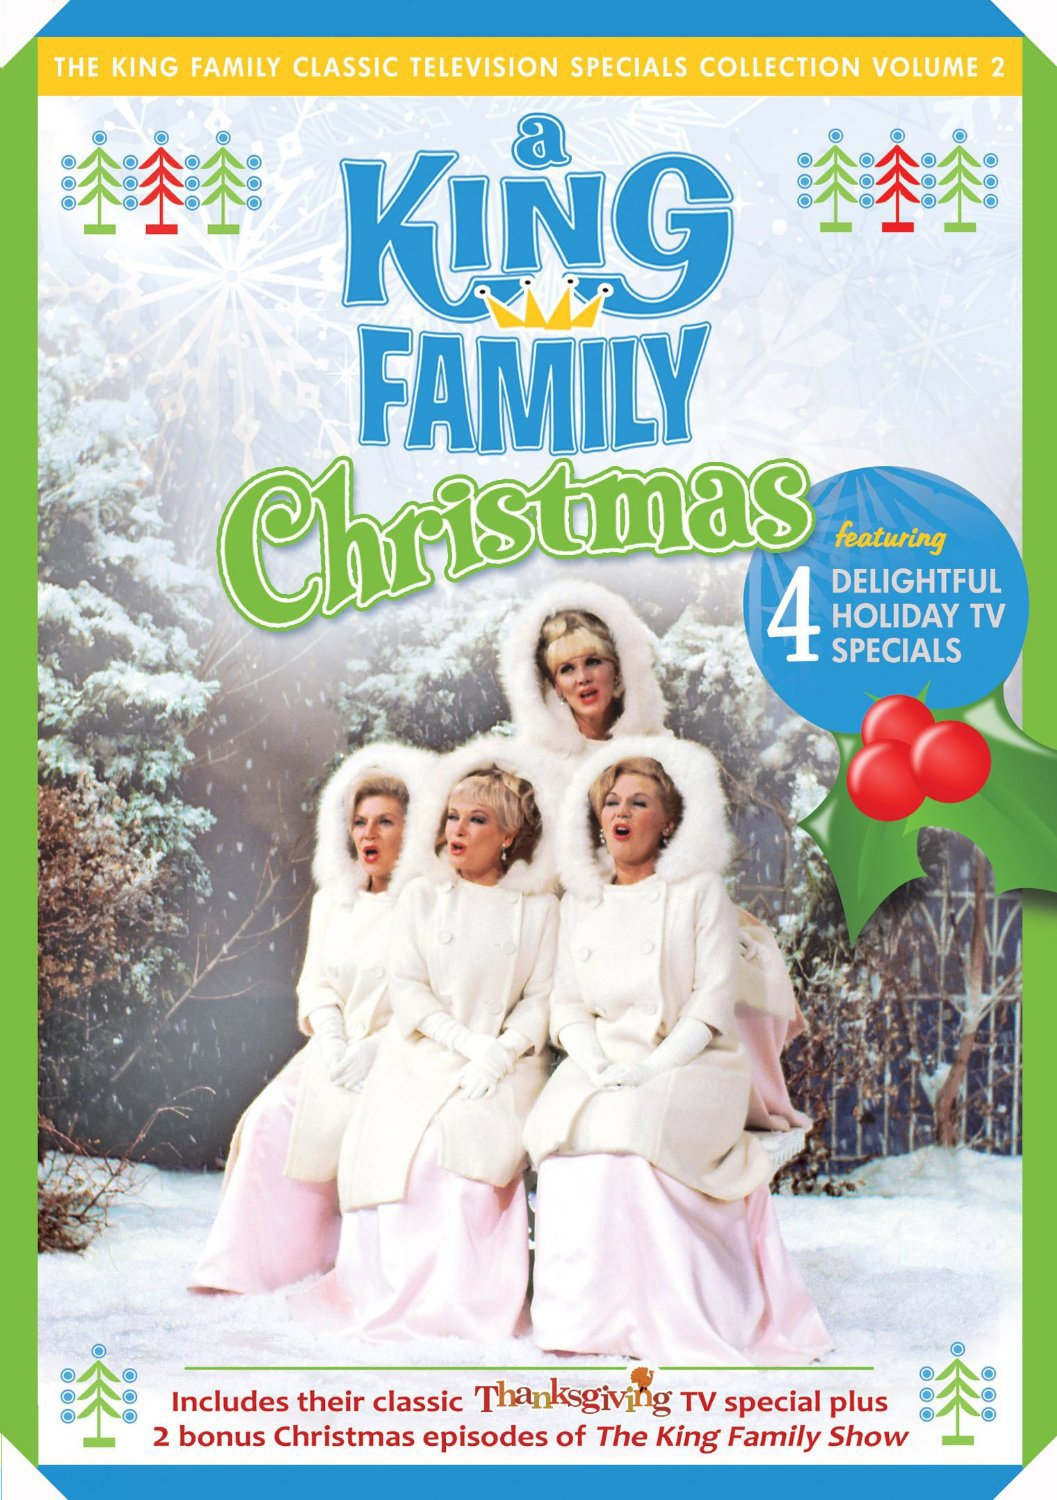 King Family - King Family Christmas: Classic Television Specials Volume 2 by Polly O Entertainmen